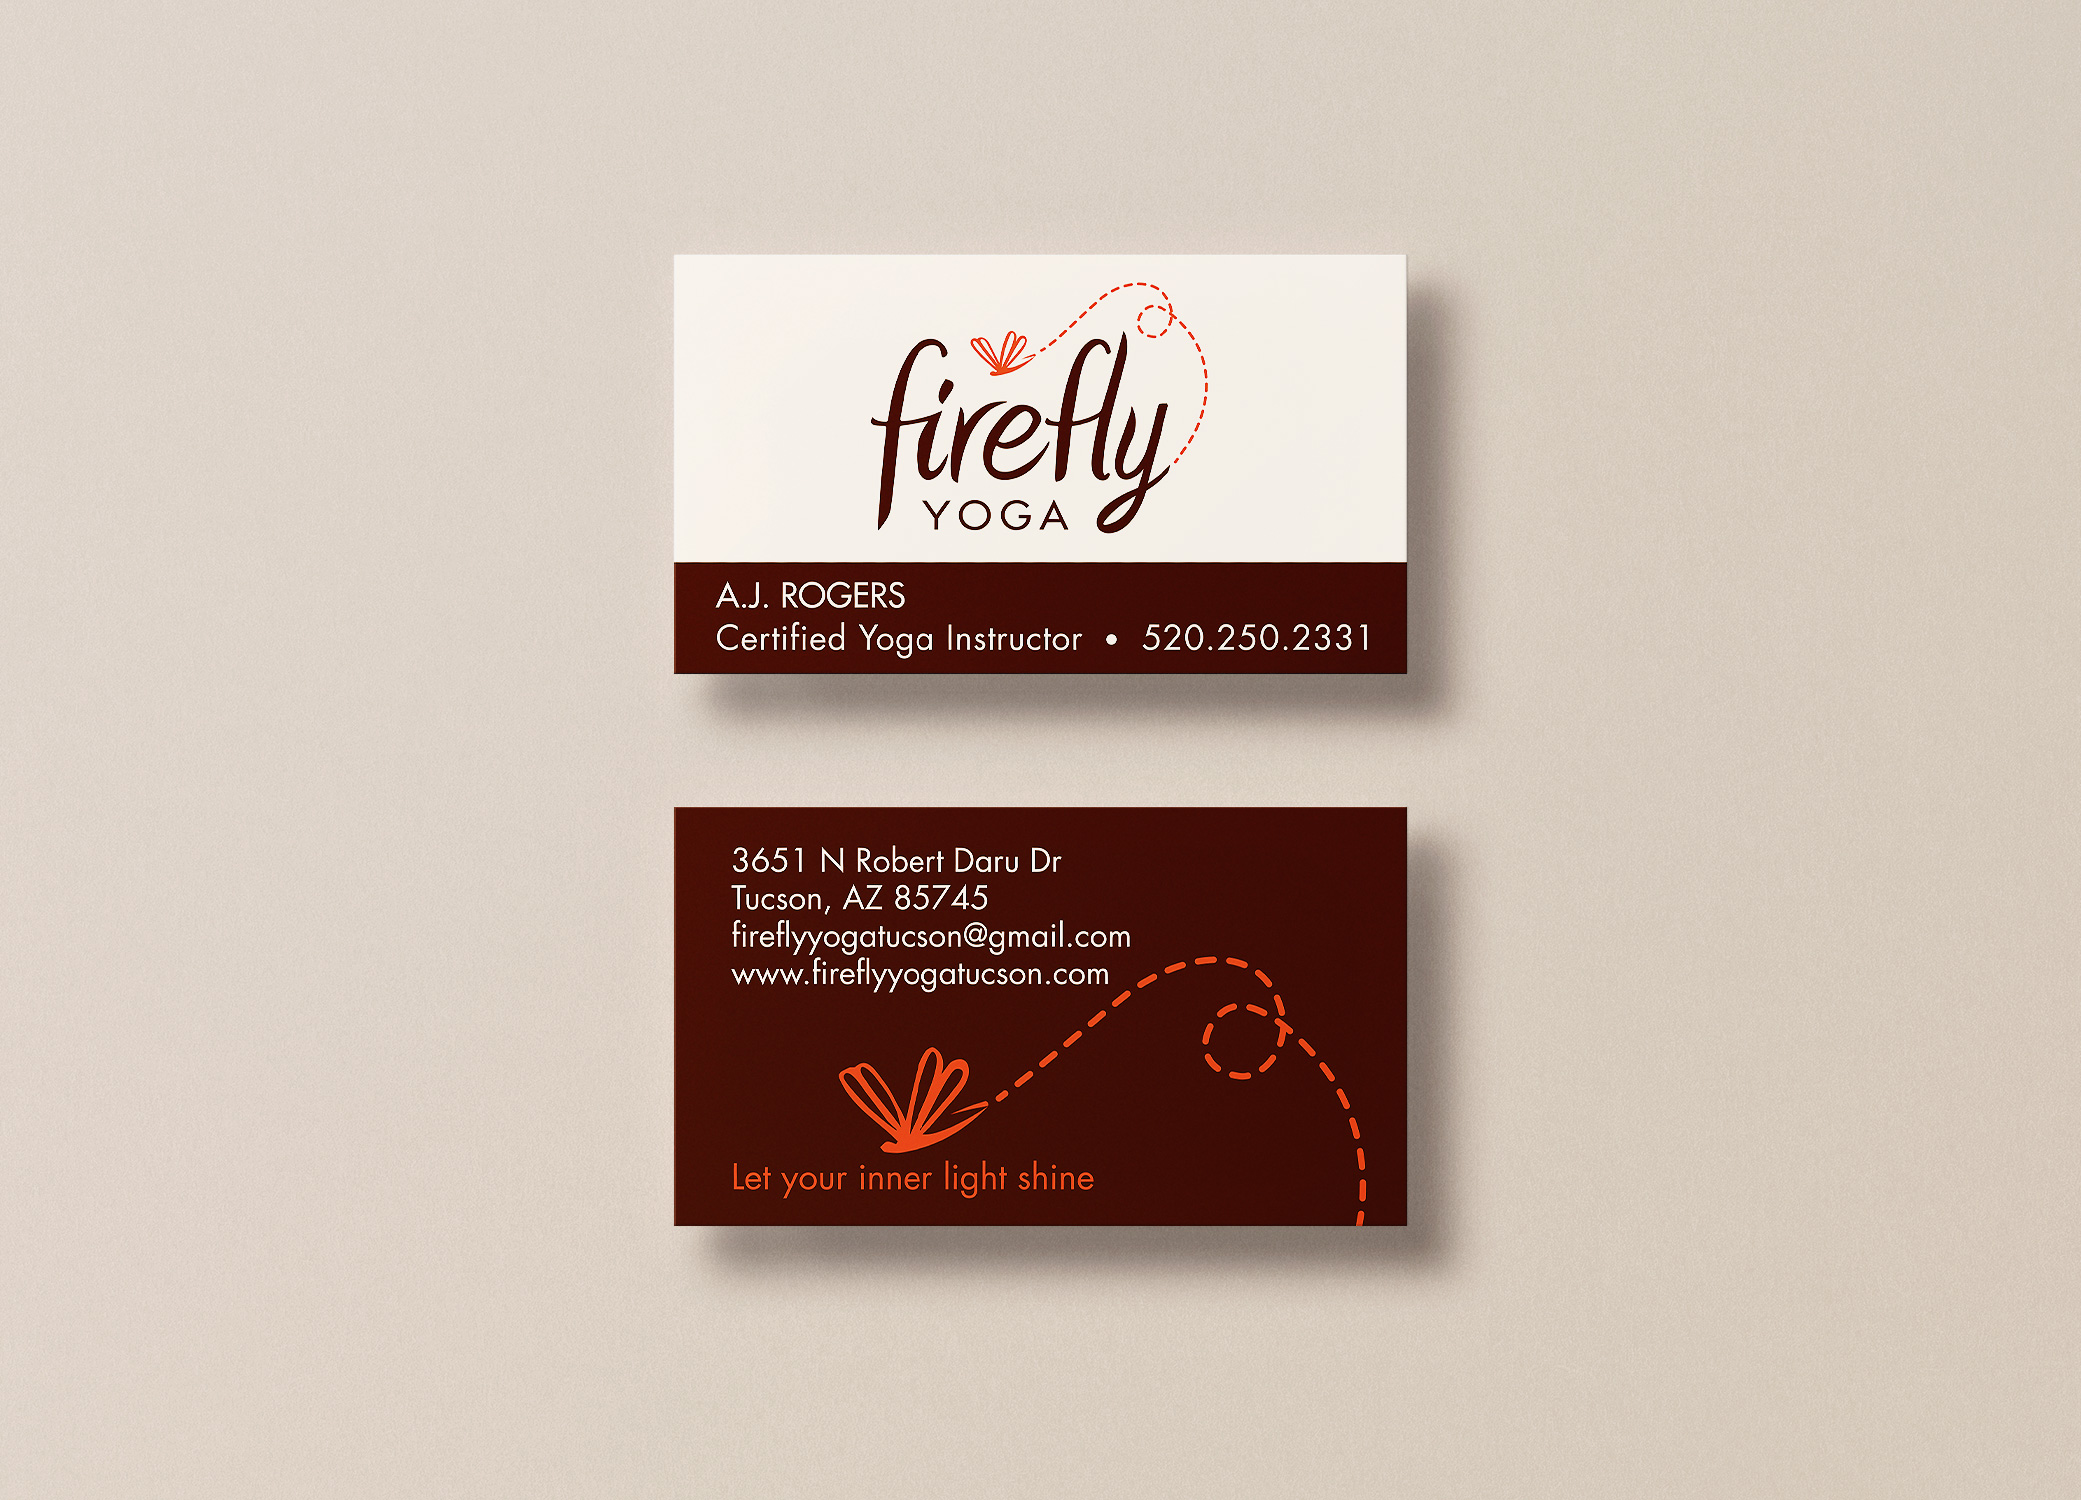 Firefly Yoga business cards showing  branding and marketing design.